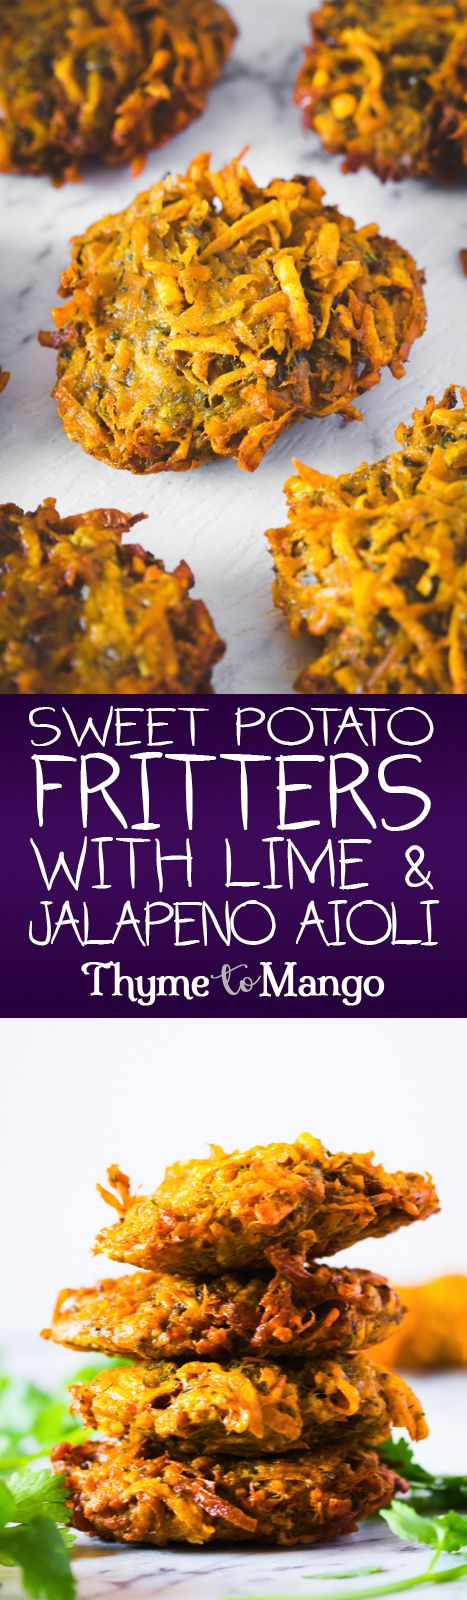 Sweet Potato fritters + lime and jalapeño aioli = Best light lunch EVER!!!!